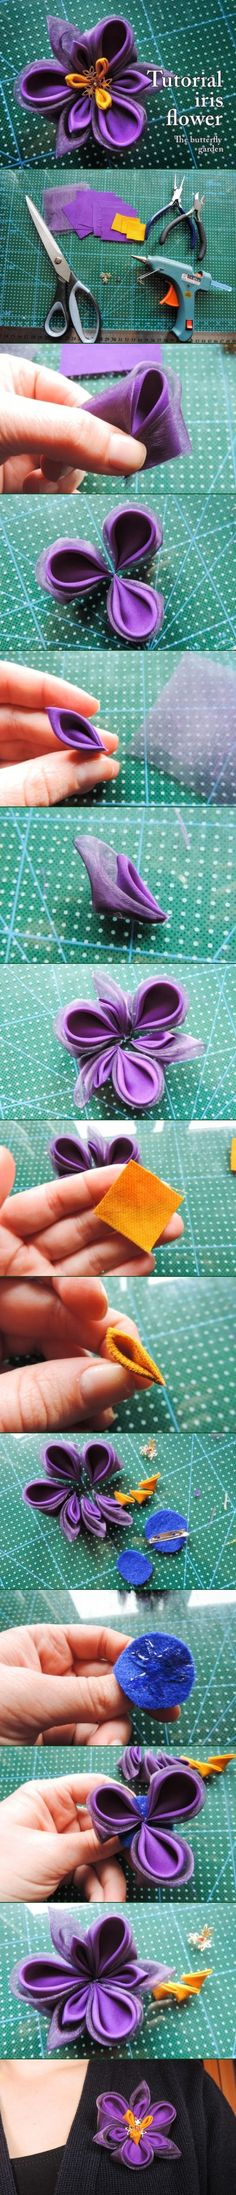 #fabric #flower #ribbon #kanzashi #inspiration #ornament #iris #fabricorigami